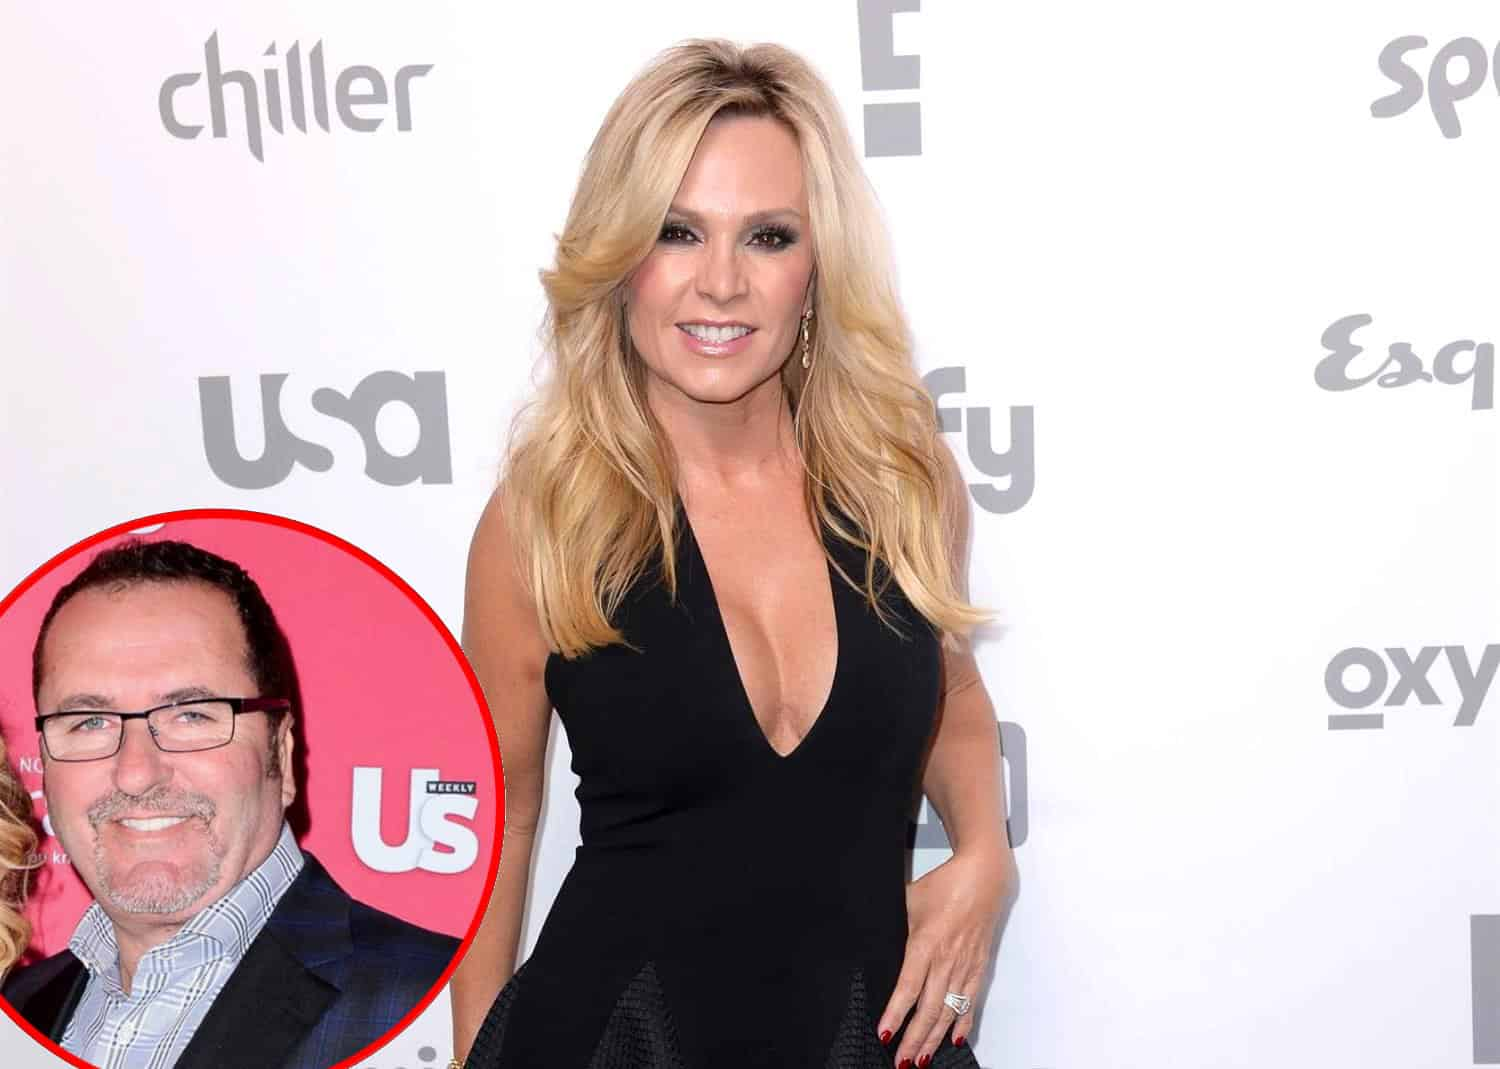 RHOC's Tamra Judge Files Lawsuit Against Insurance Company for Failing to Defend Her Against Jim Bellino's $1 Million Defamation Case